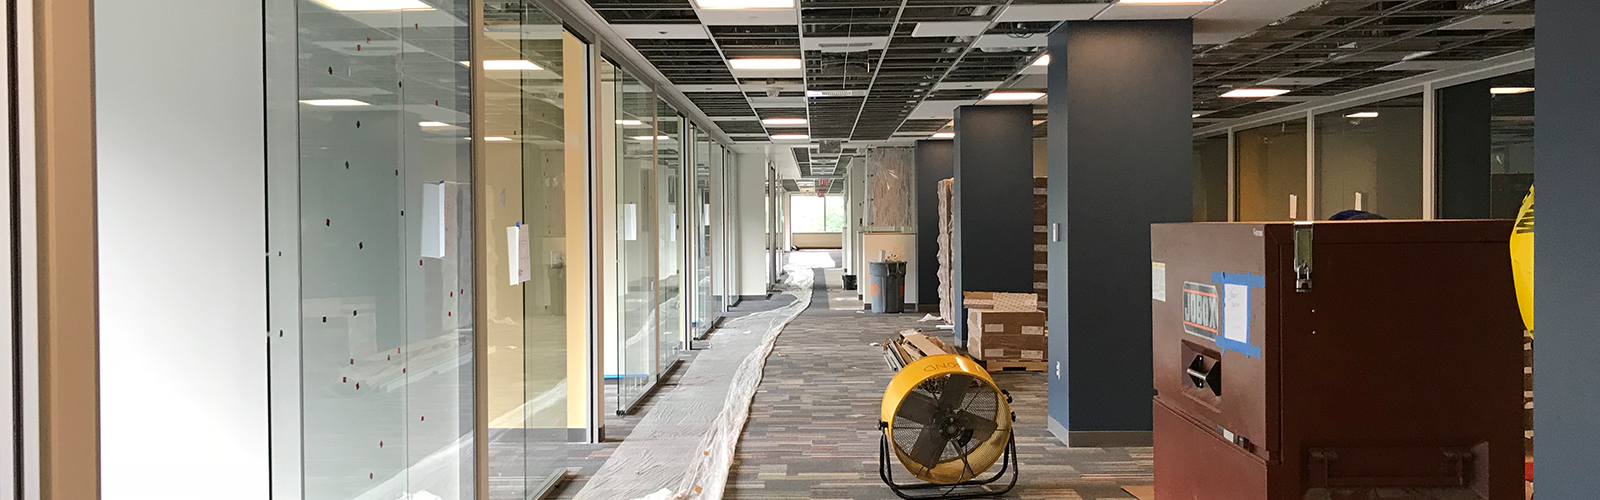 Refurbishing of the medical school building to accommodate the office needs of our faculty